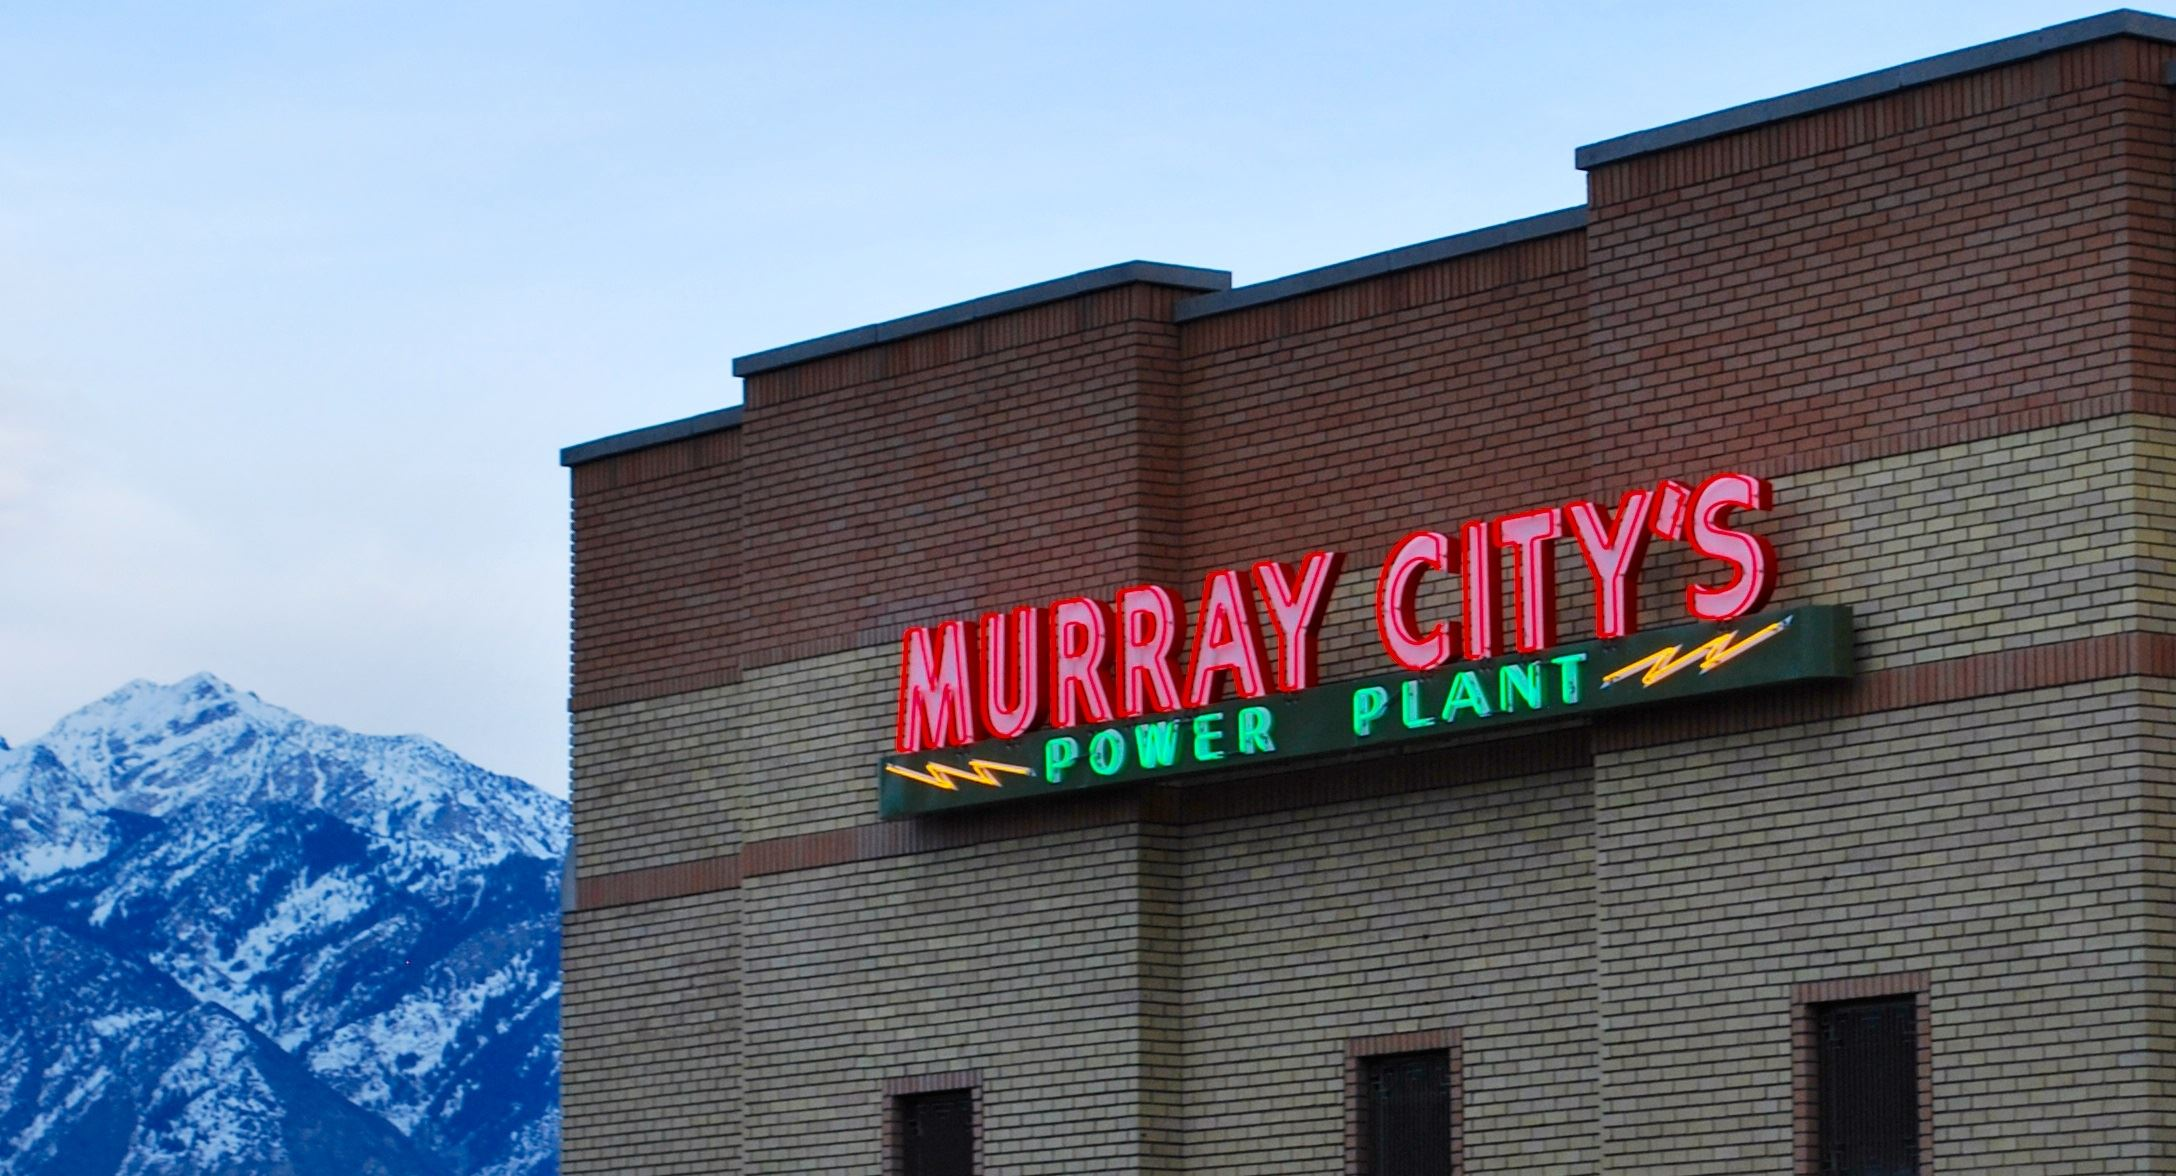 Murray City